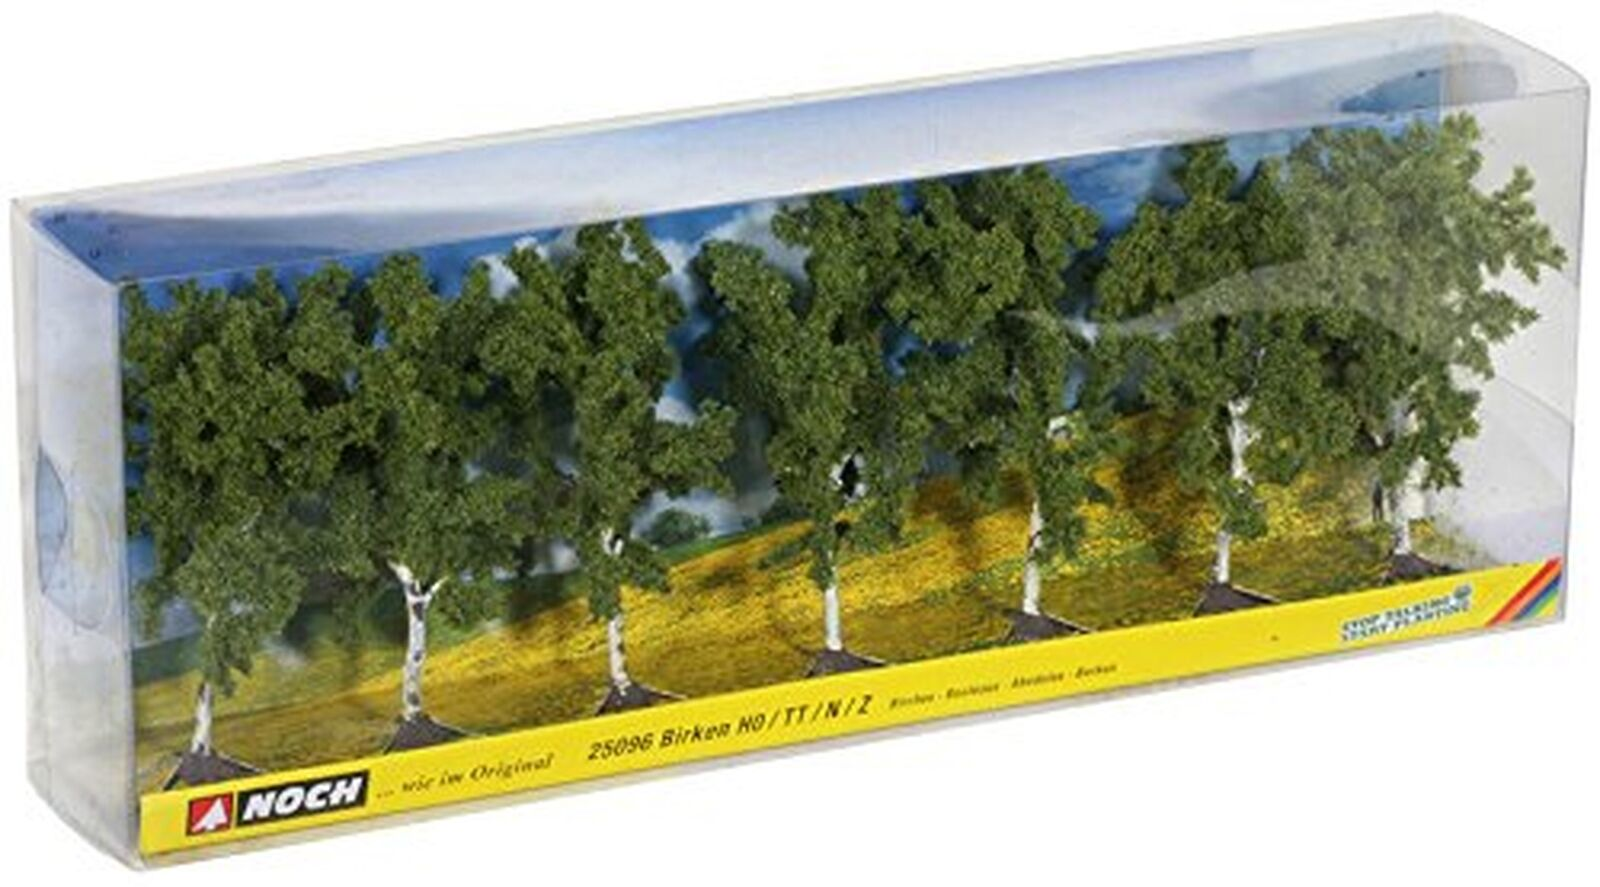 Noch 25096 10 cm High Birches Landscape Modelling  7-Piece